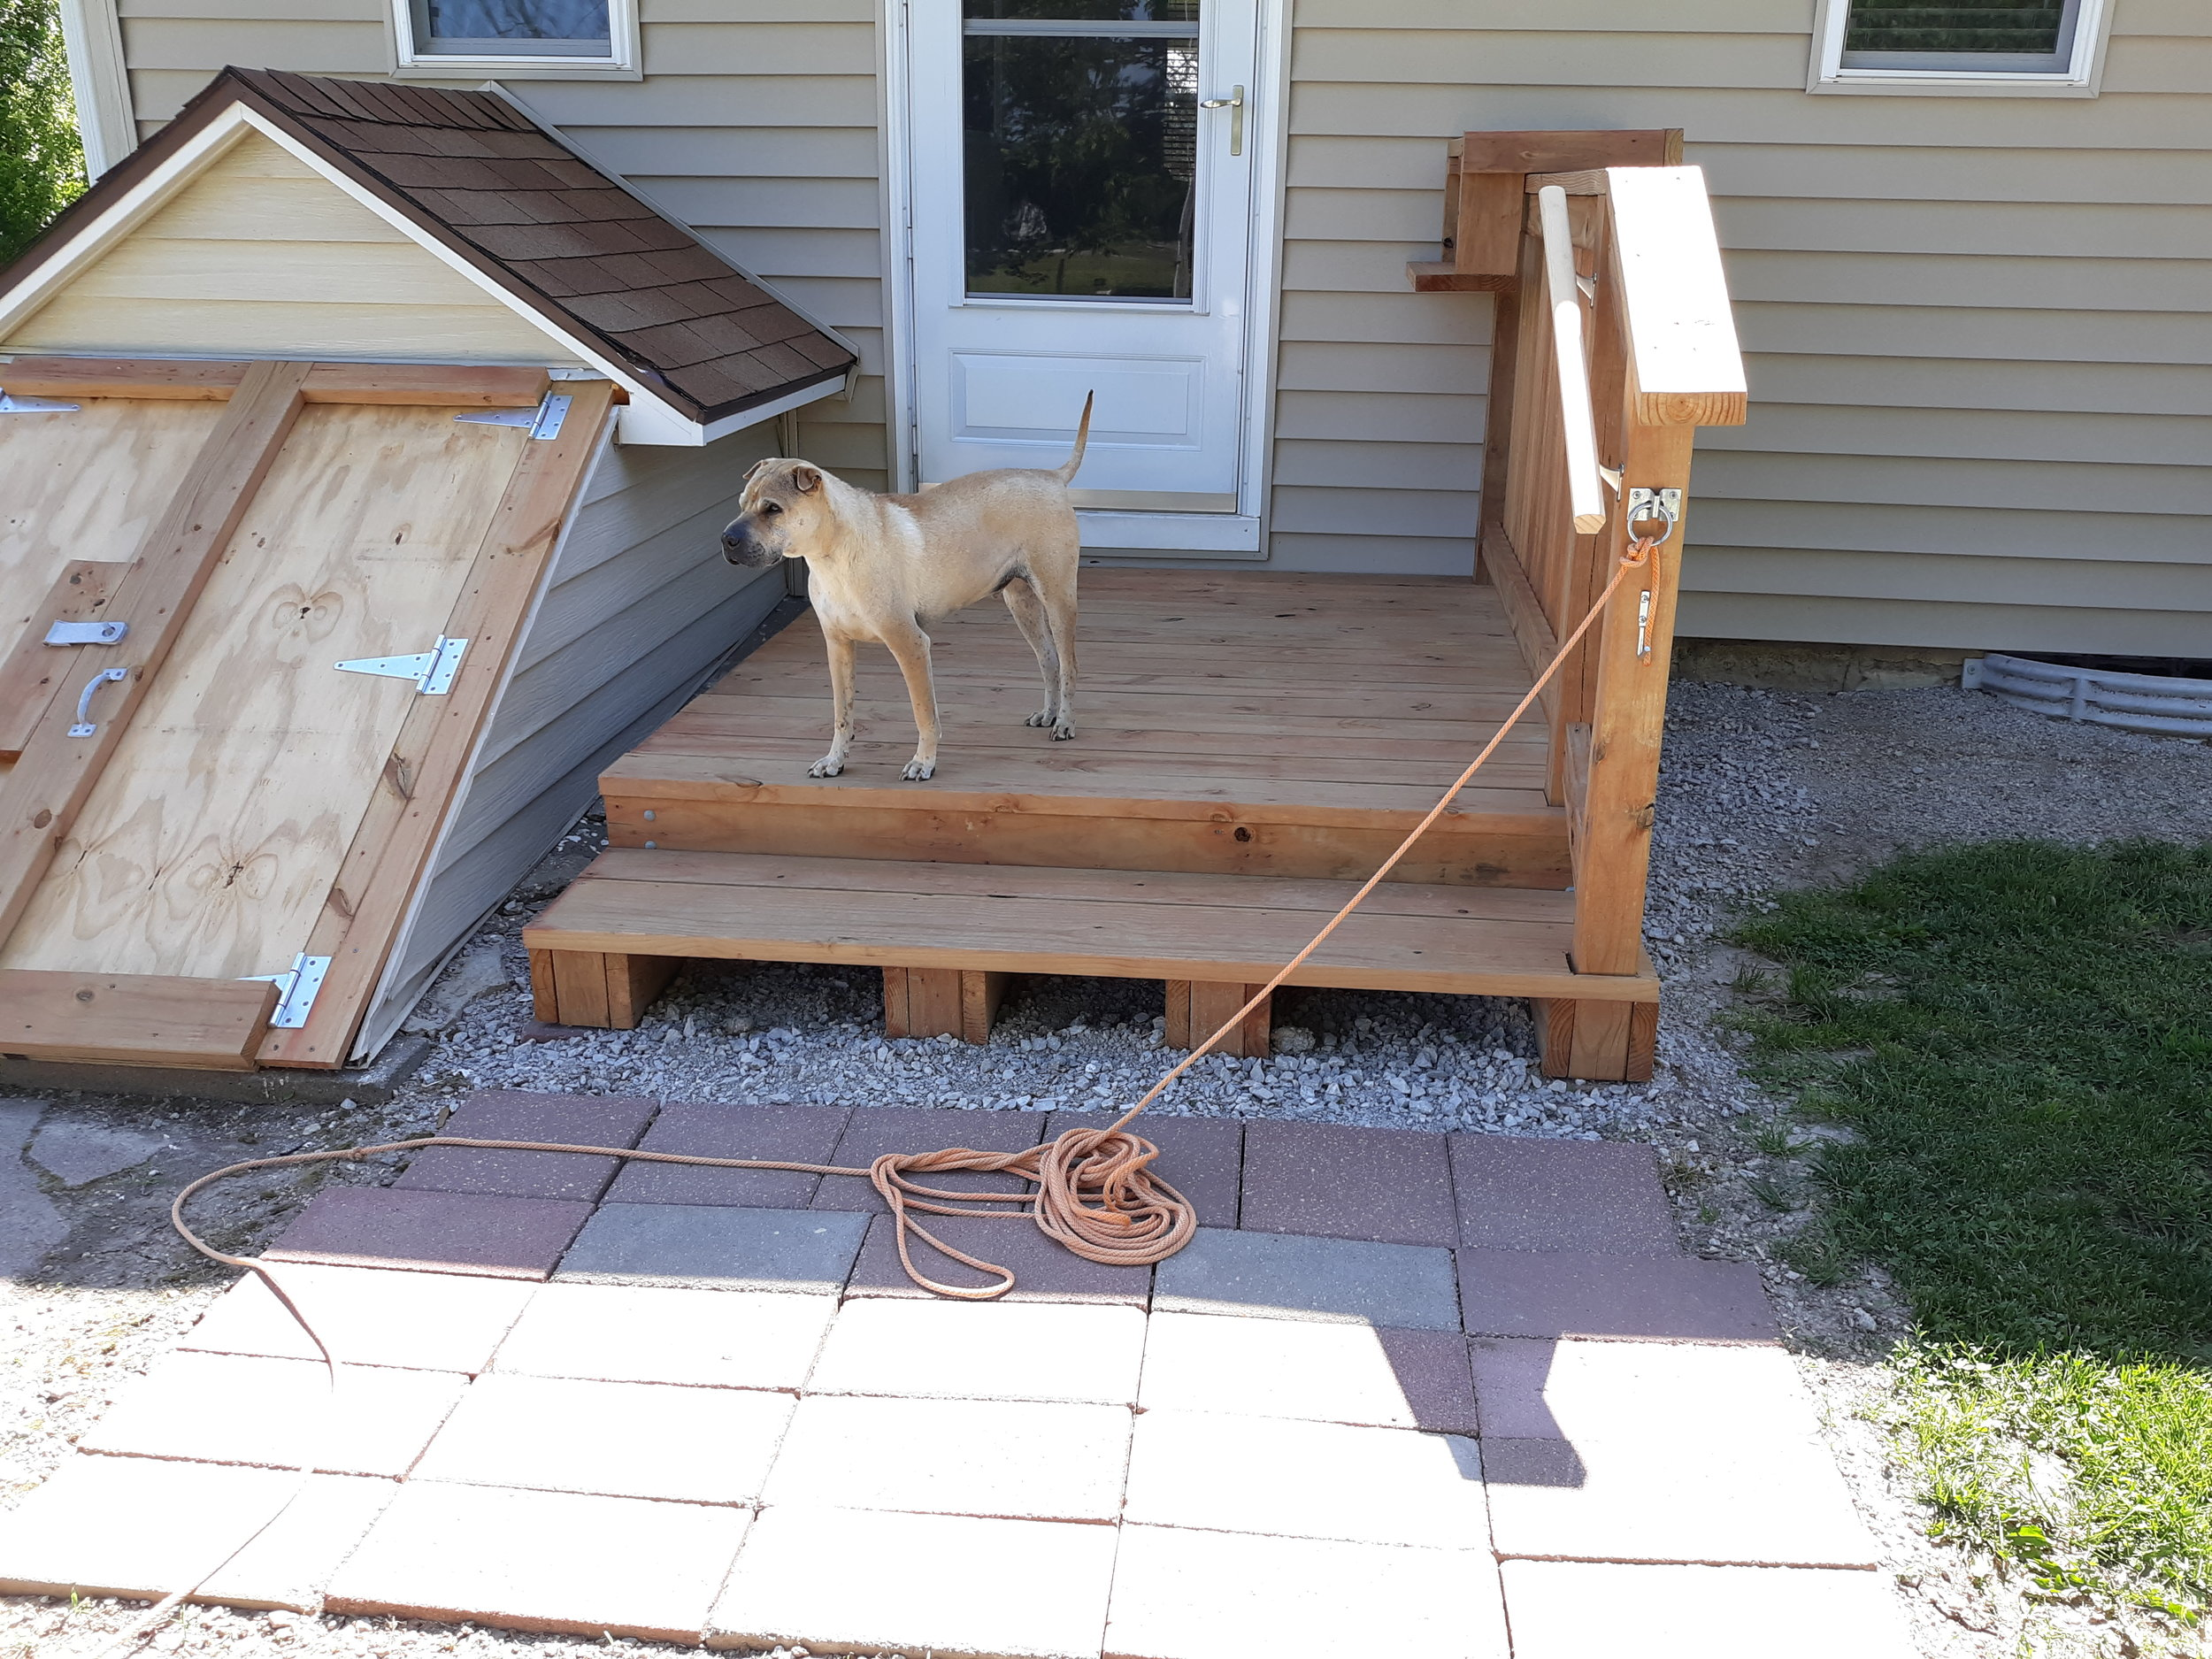 Photo of our new stoop with our dog, Chulo. He doesn't run away like our girl dog!